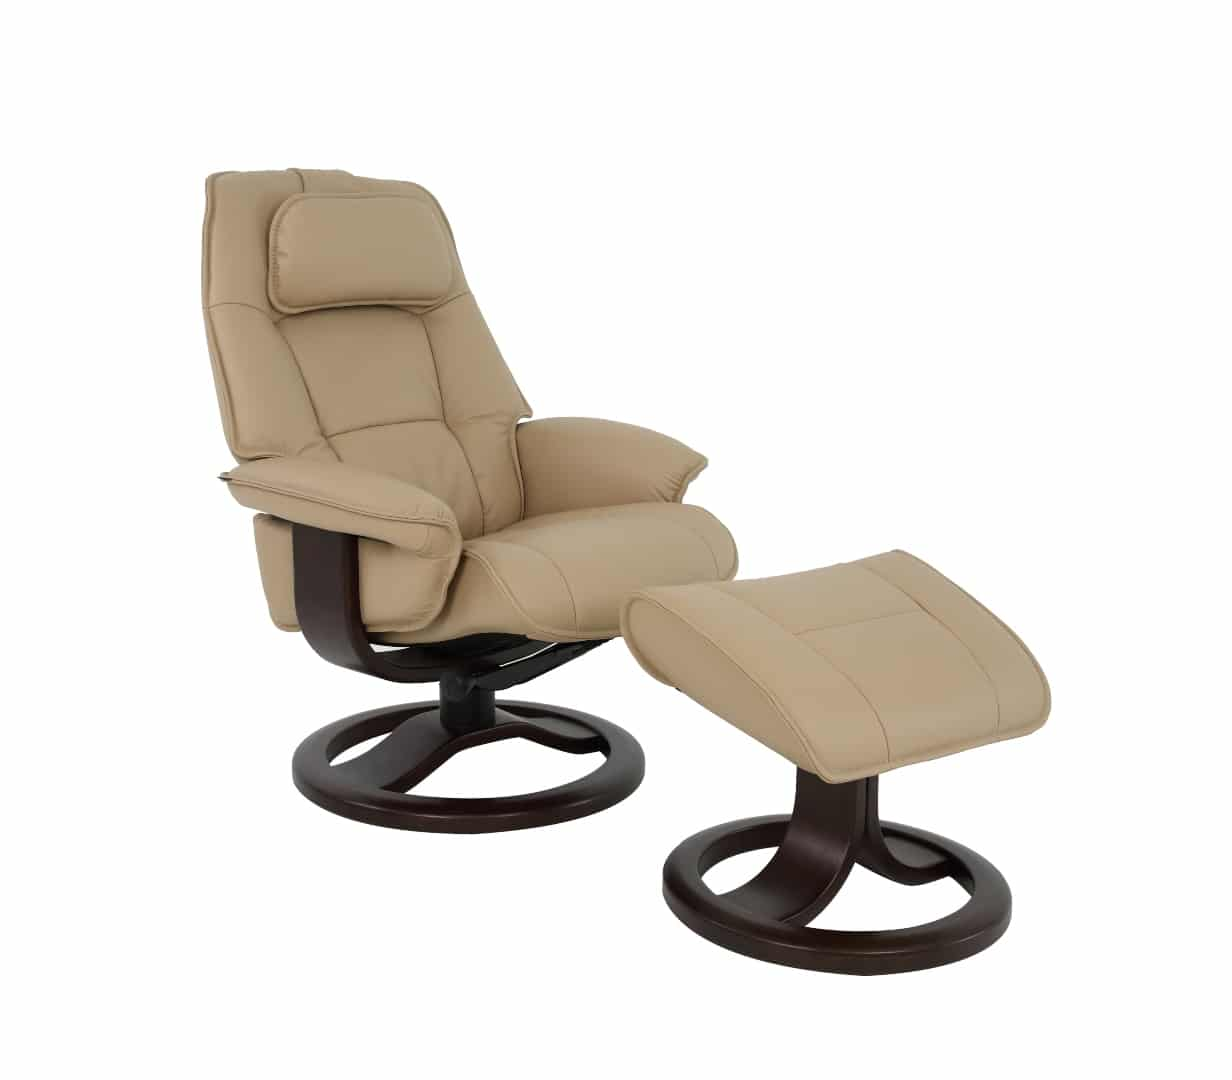 Admiral R Recliner And Ottoman